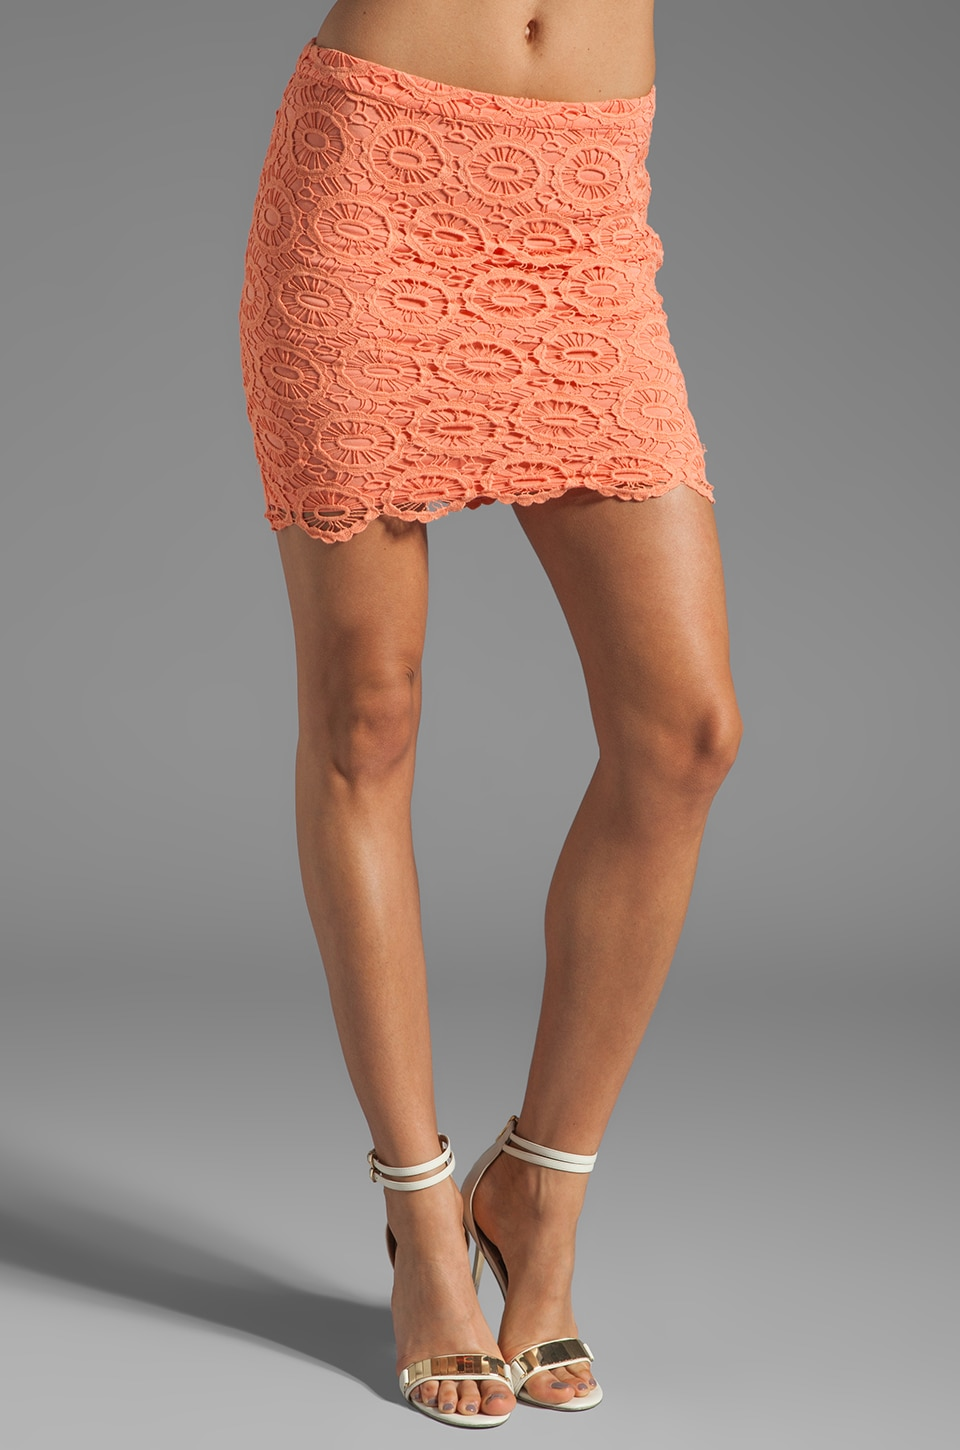 BB Dakota Williams Cotton Crochet Skirt in Fresh Peach